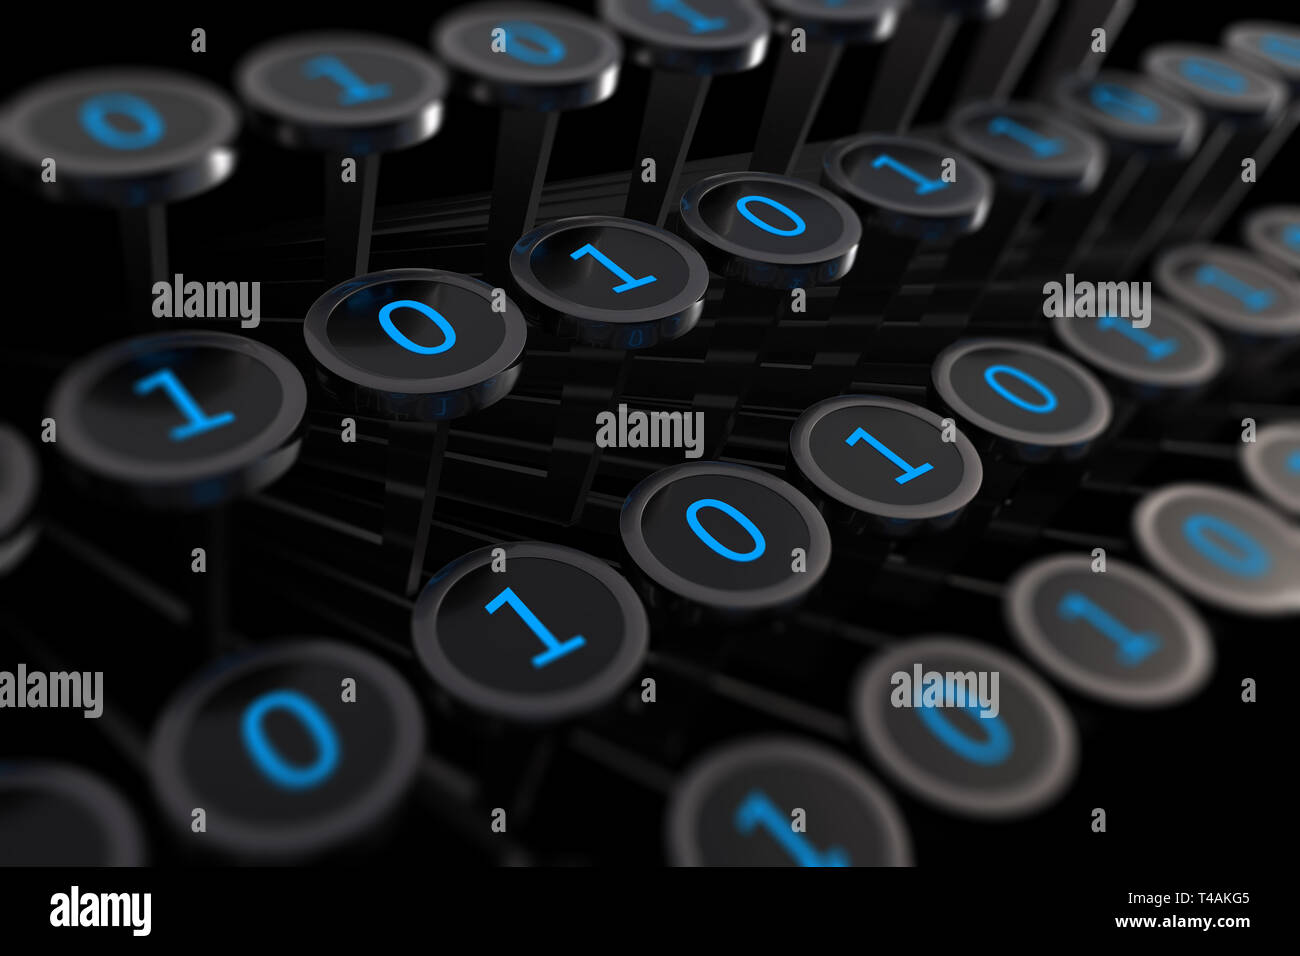 3d illustration: vintage typewriter with numbers one and zero instead of letters on the keys. Machine code. Binary language programming. Techno art - Stock Image